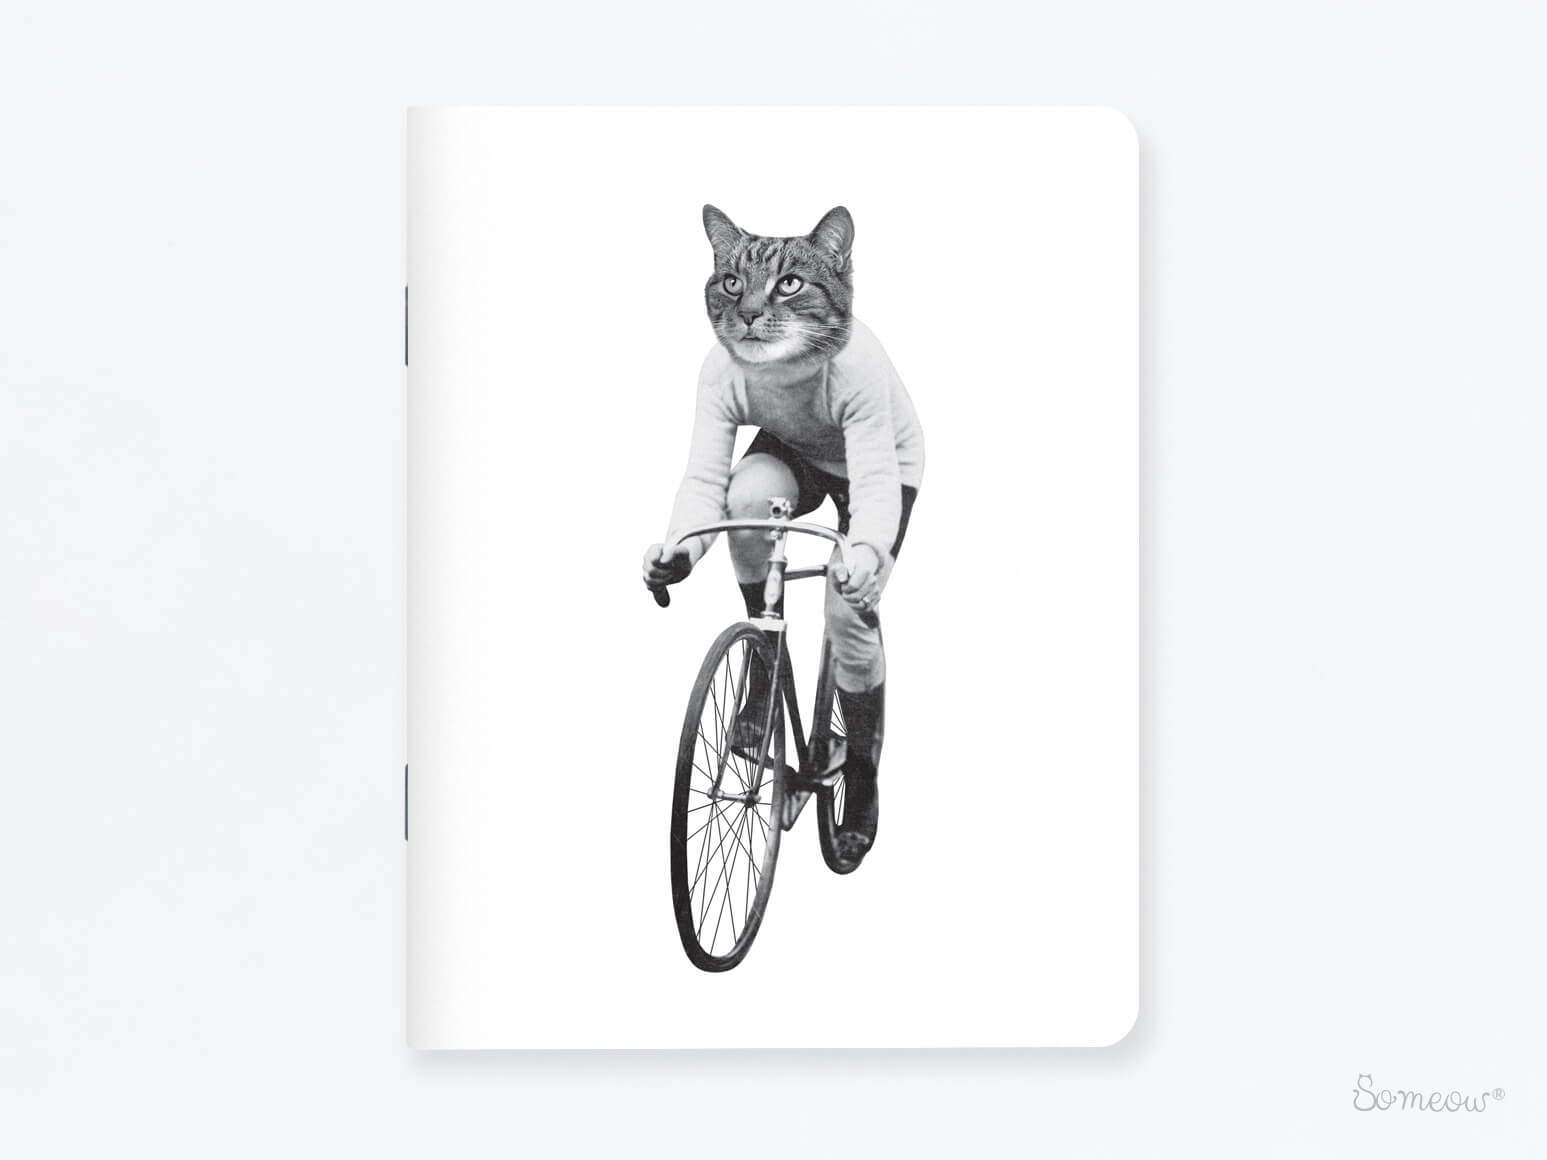 Carnet de notes Cat on Bike